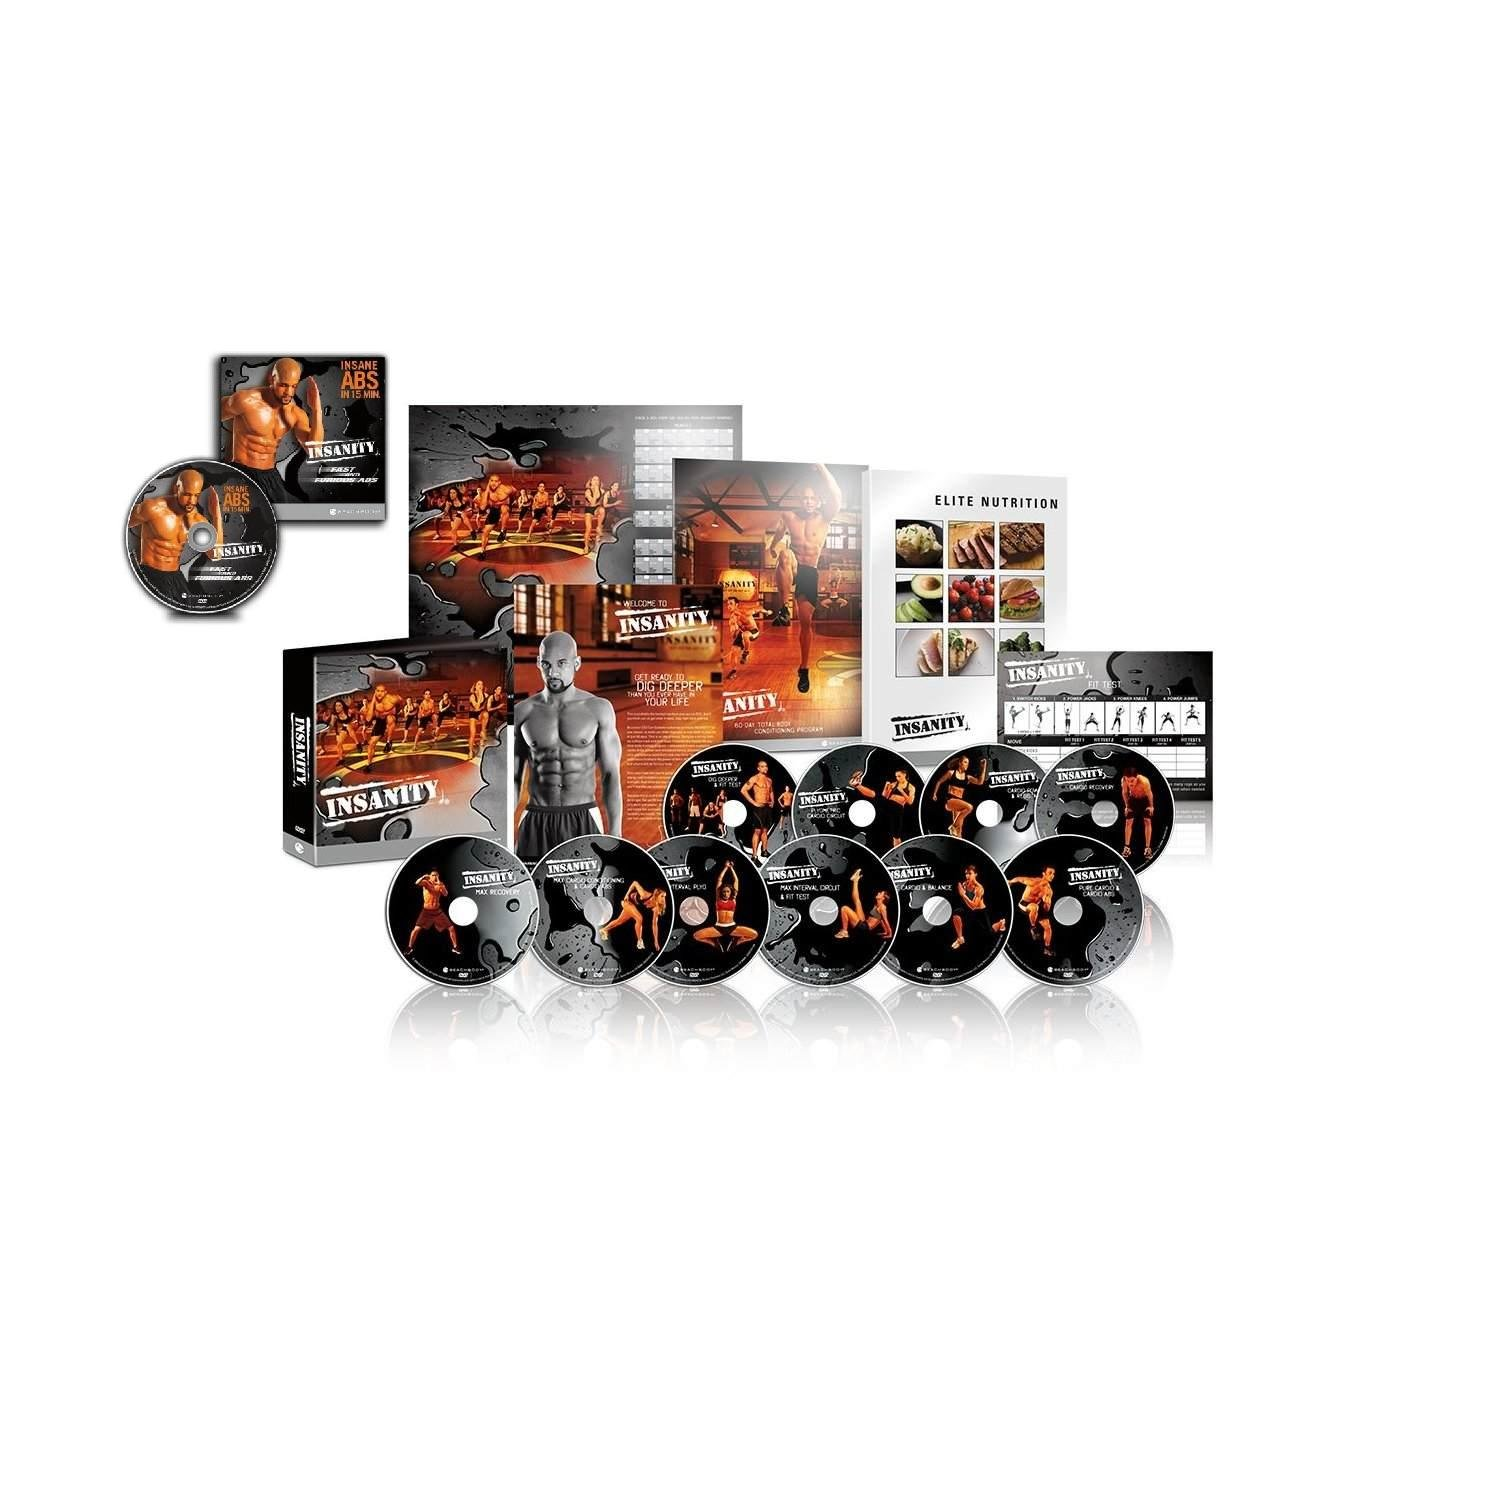 Insanity 60 Day 14 DVD WorkOut Bundle With fast and furious 20 minute dvd  set